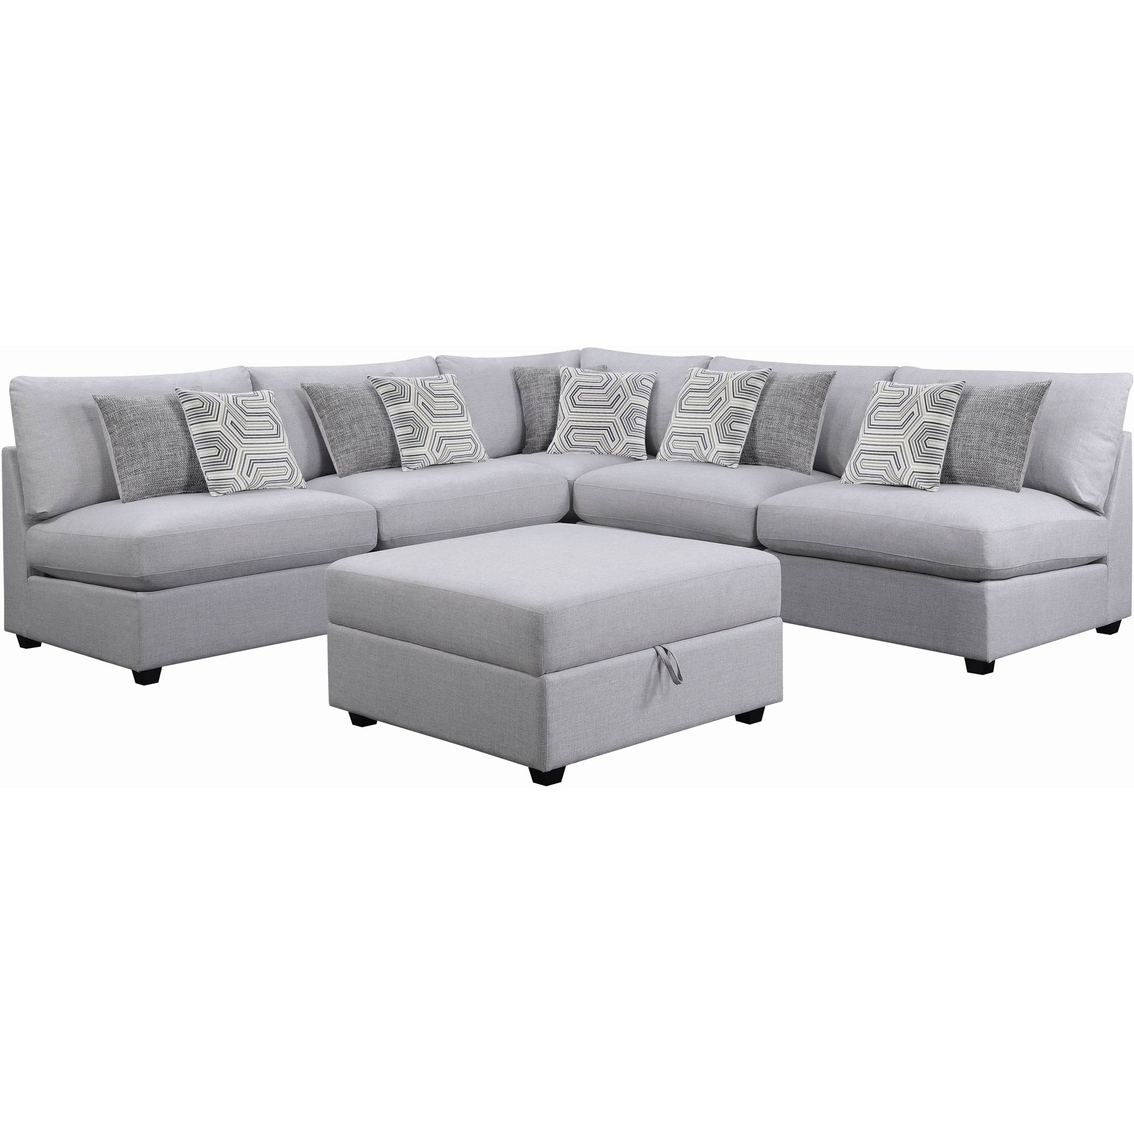 Scott living charlotte 5 pc modern sectional with 4 armless chairs corner chair